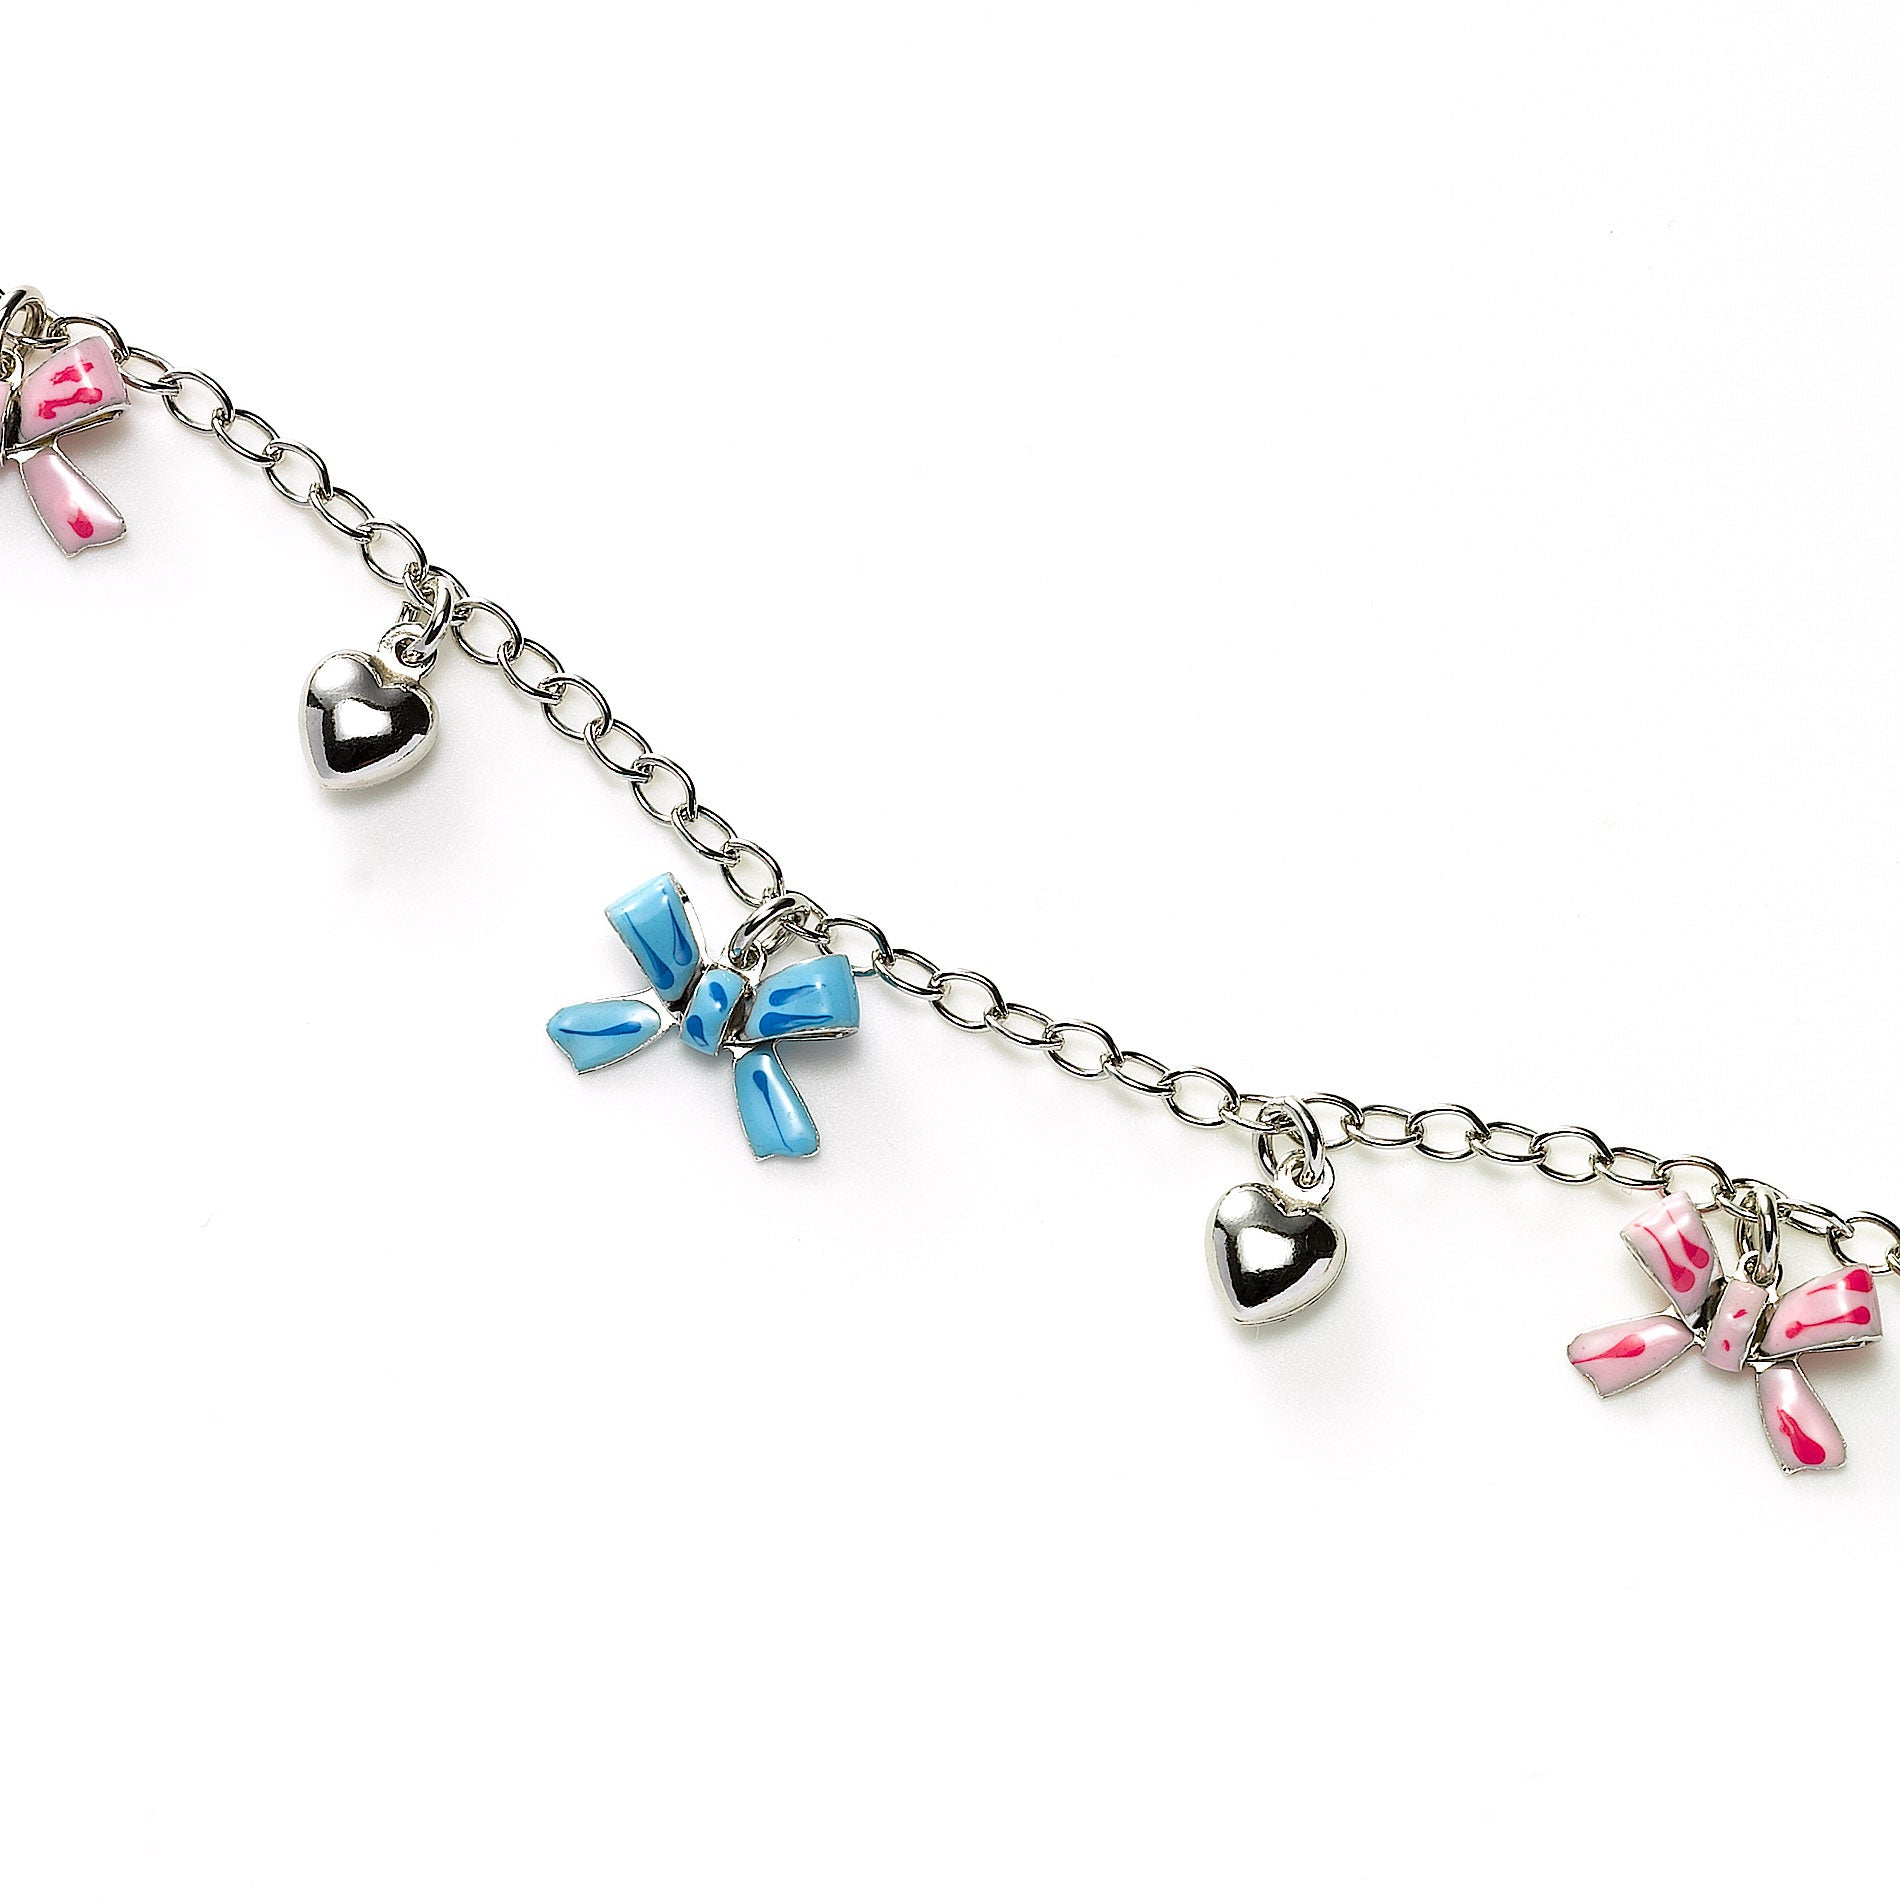 Bows and Hearts Charm Bracelet, Sterling Silver